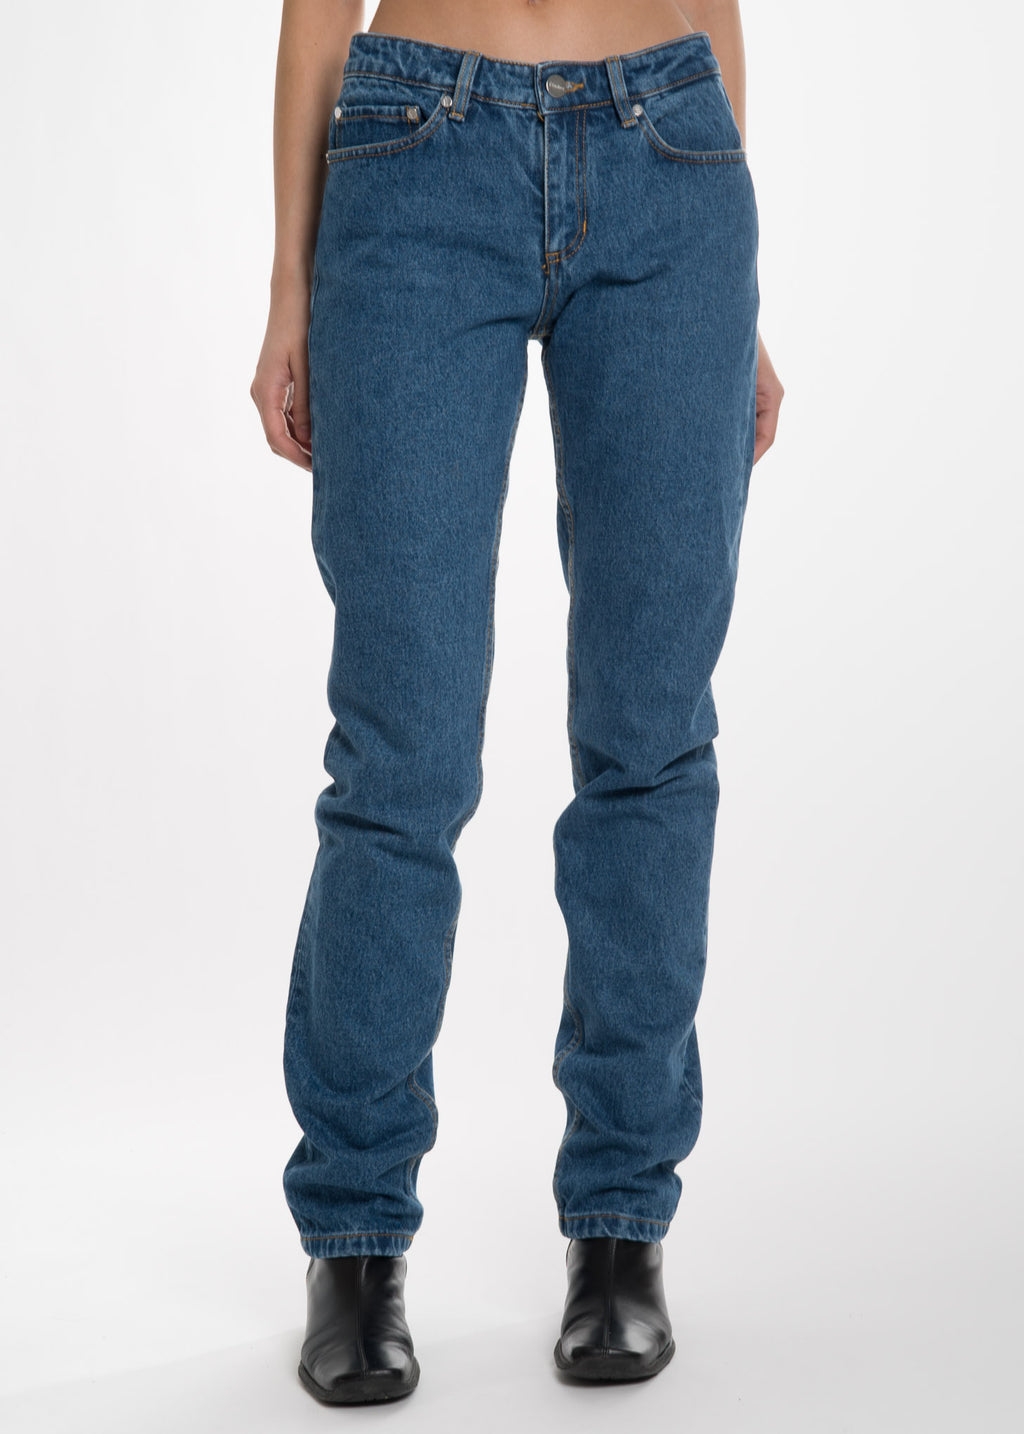 Blue Tableau Stone Wash Jeans